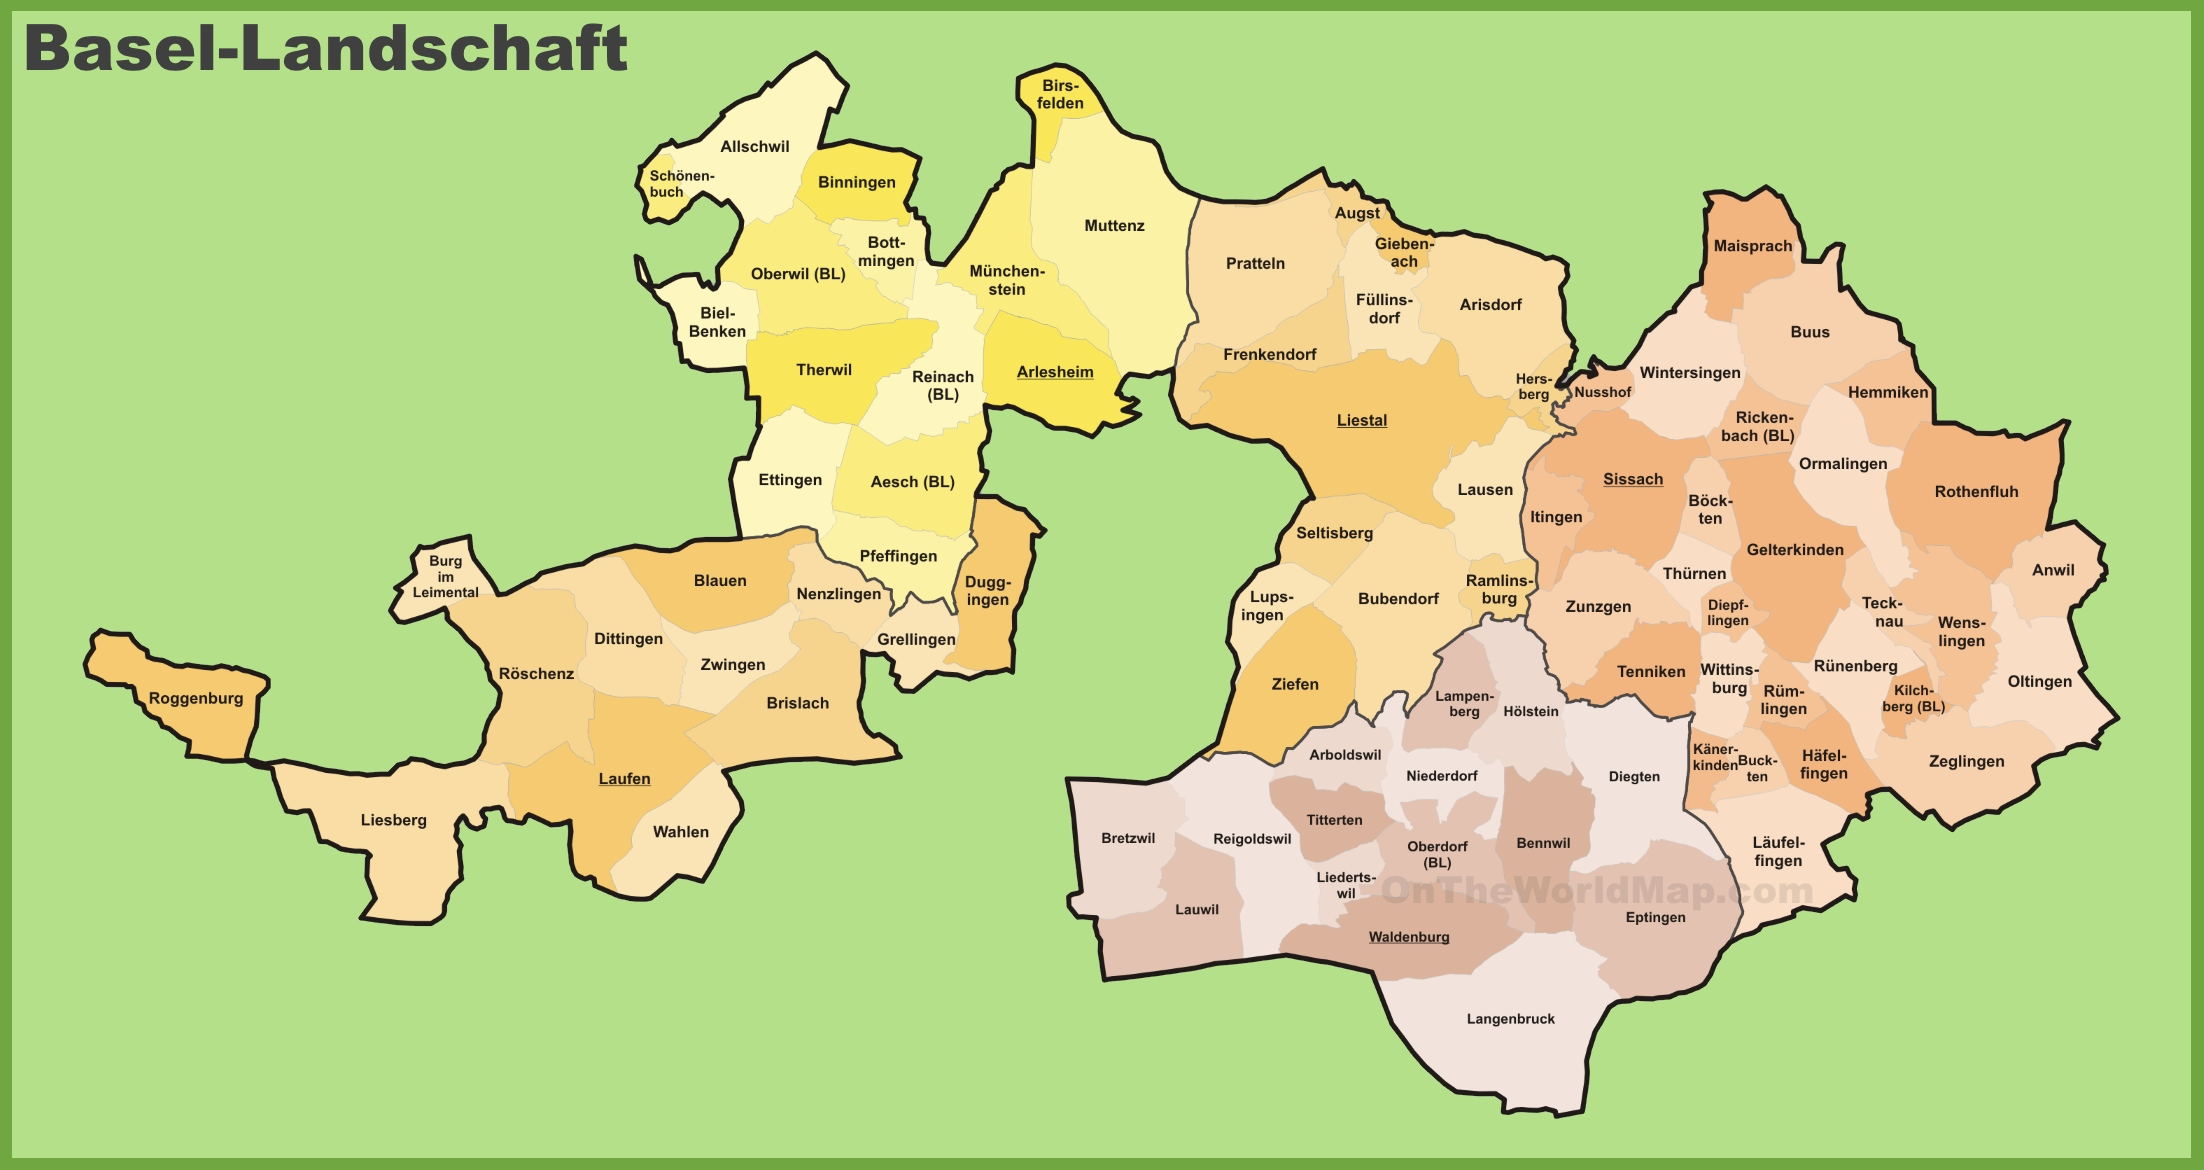 Canton of BaselLandschaft municipality map